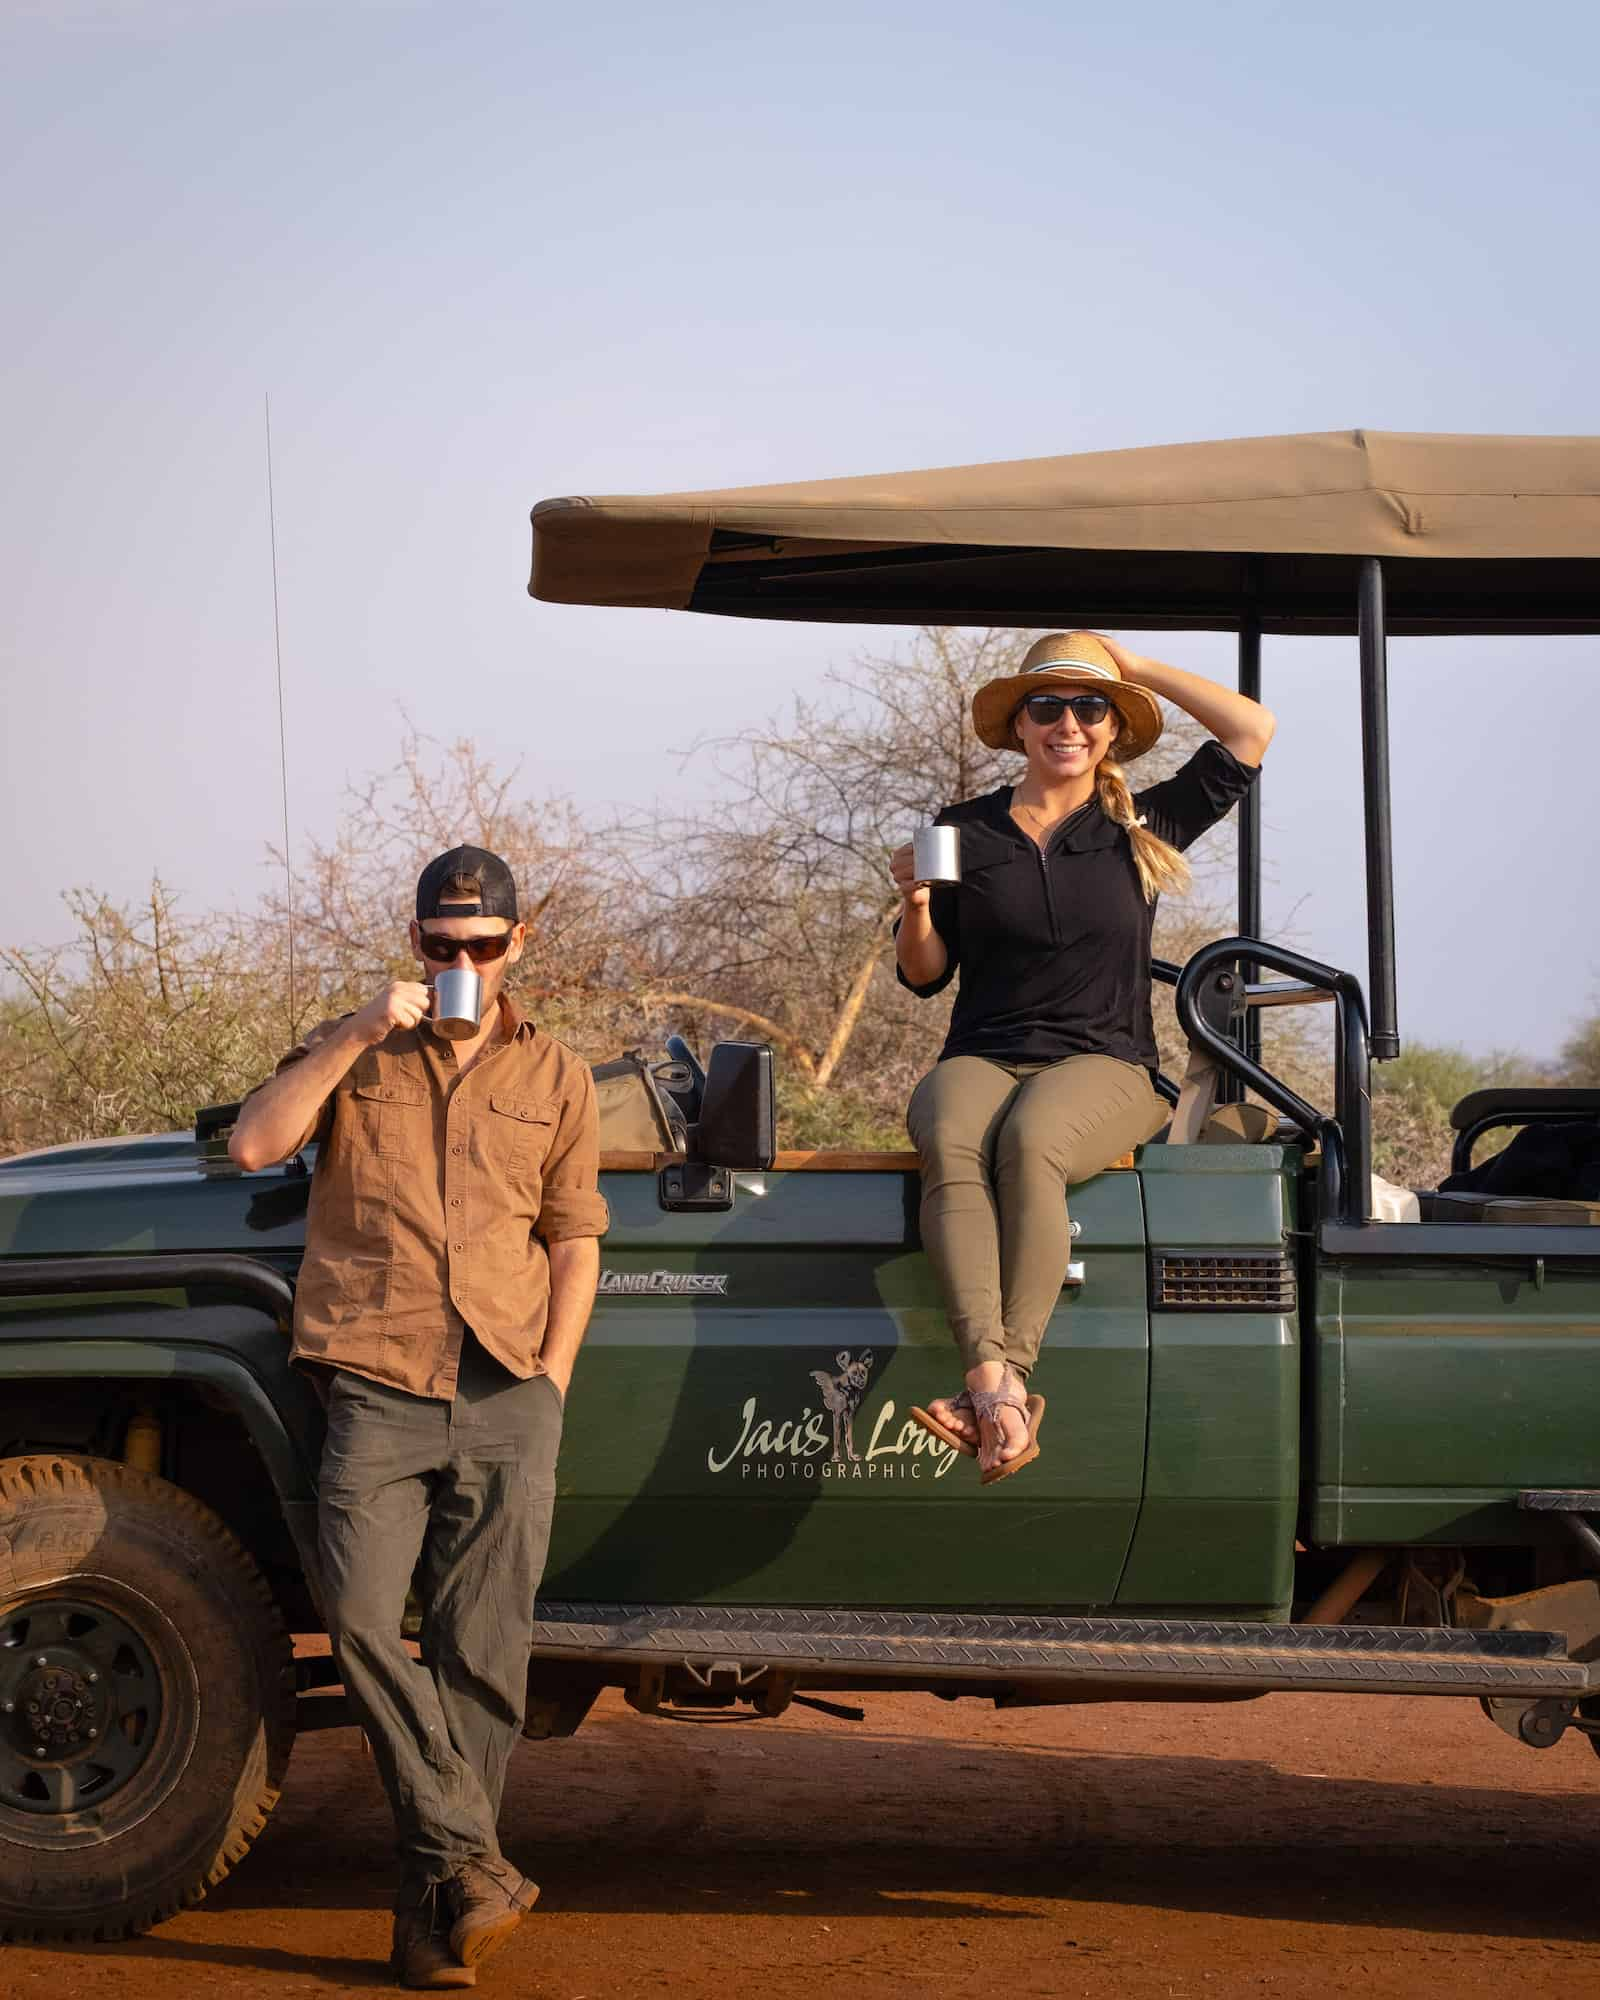 Cameron and Natasha on the Game Cruiser in South Africa